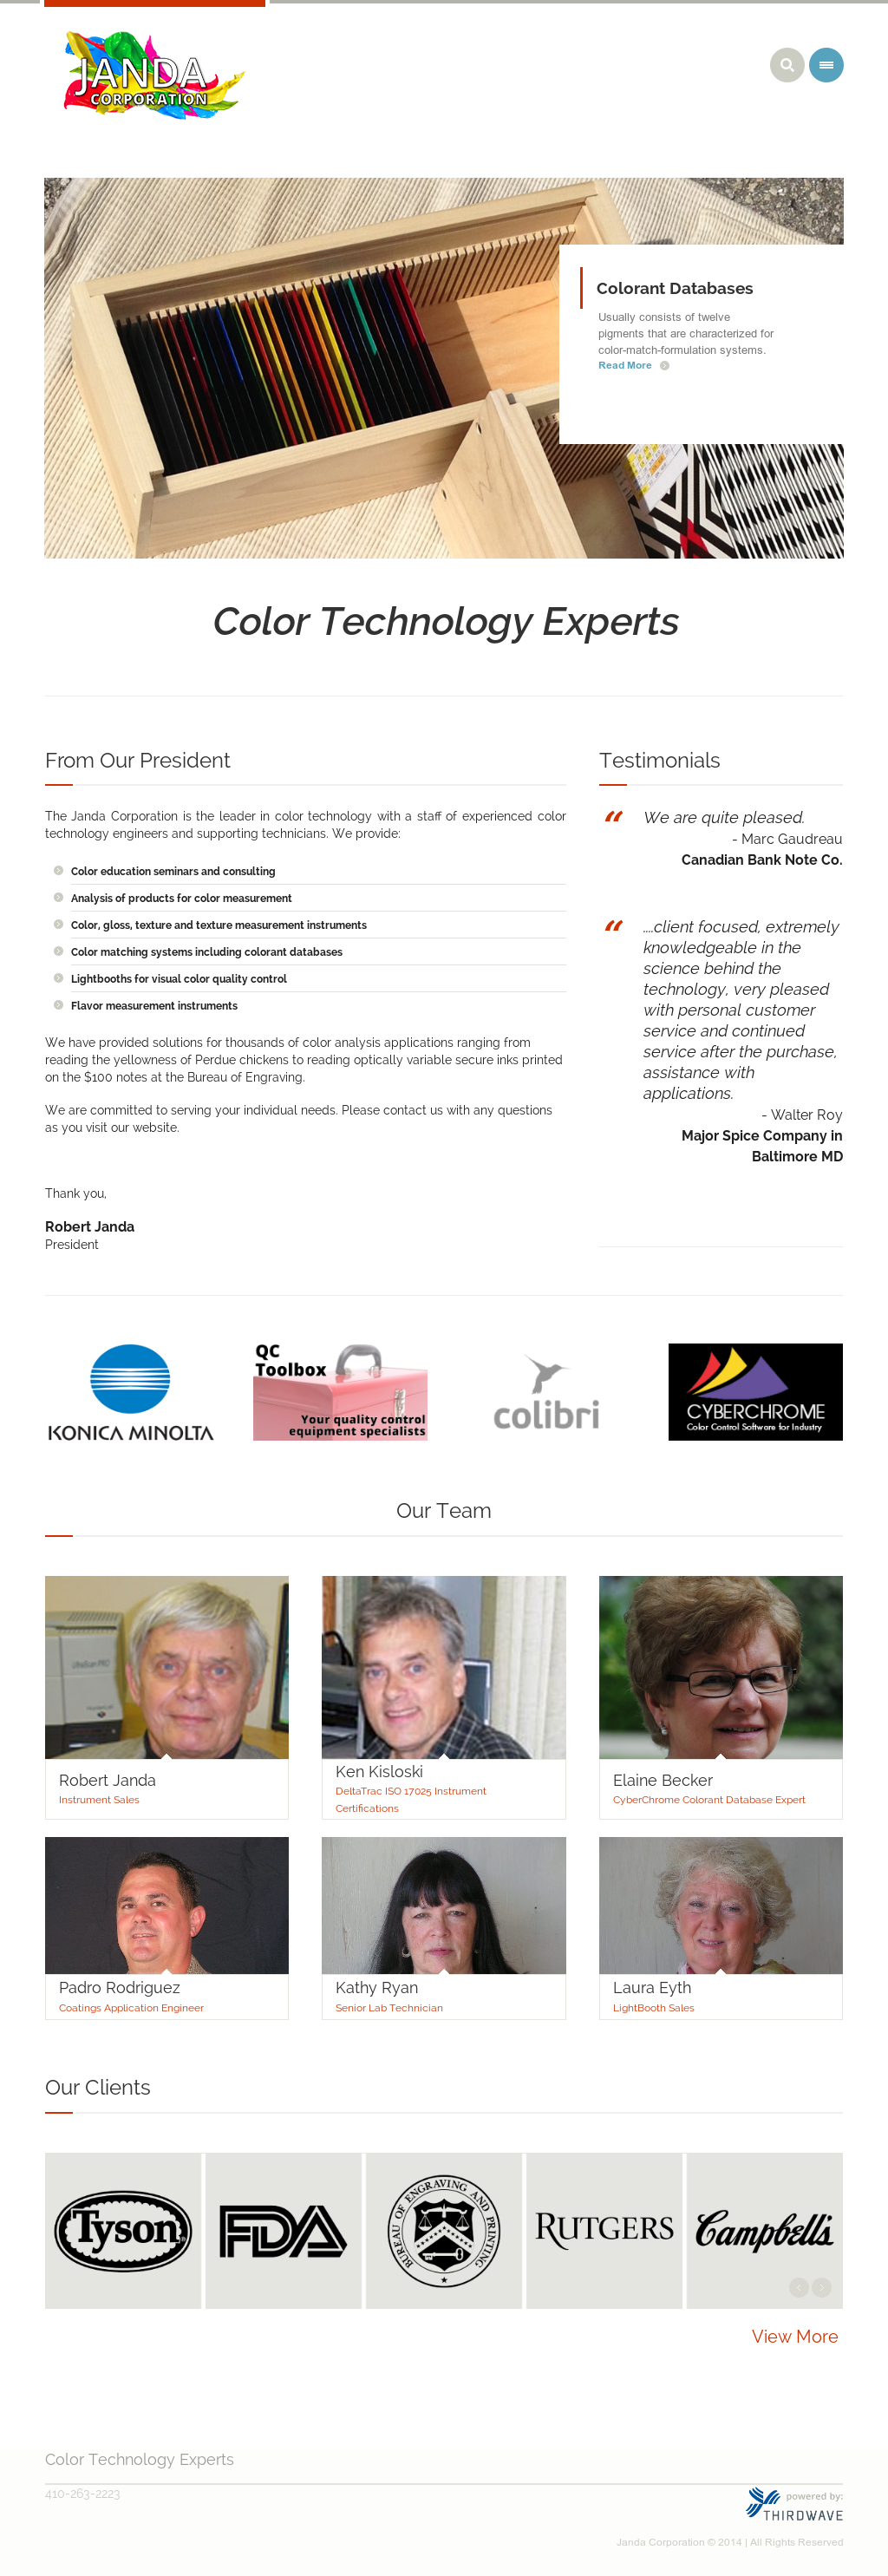 Janda S Competitors Revenue Number Of Employees Funding Acquisitions News Owler Company Profile